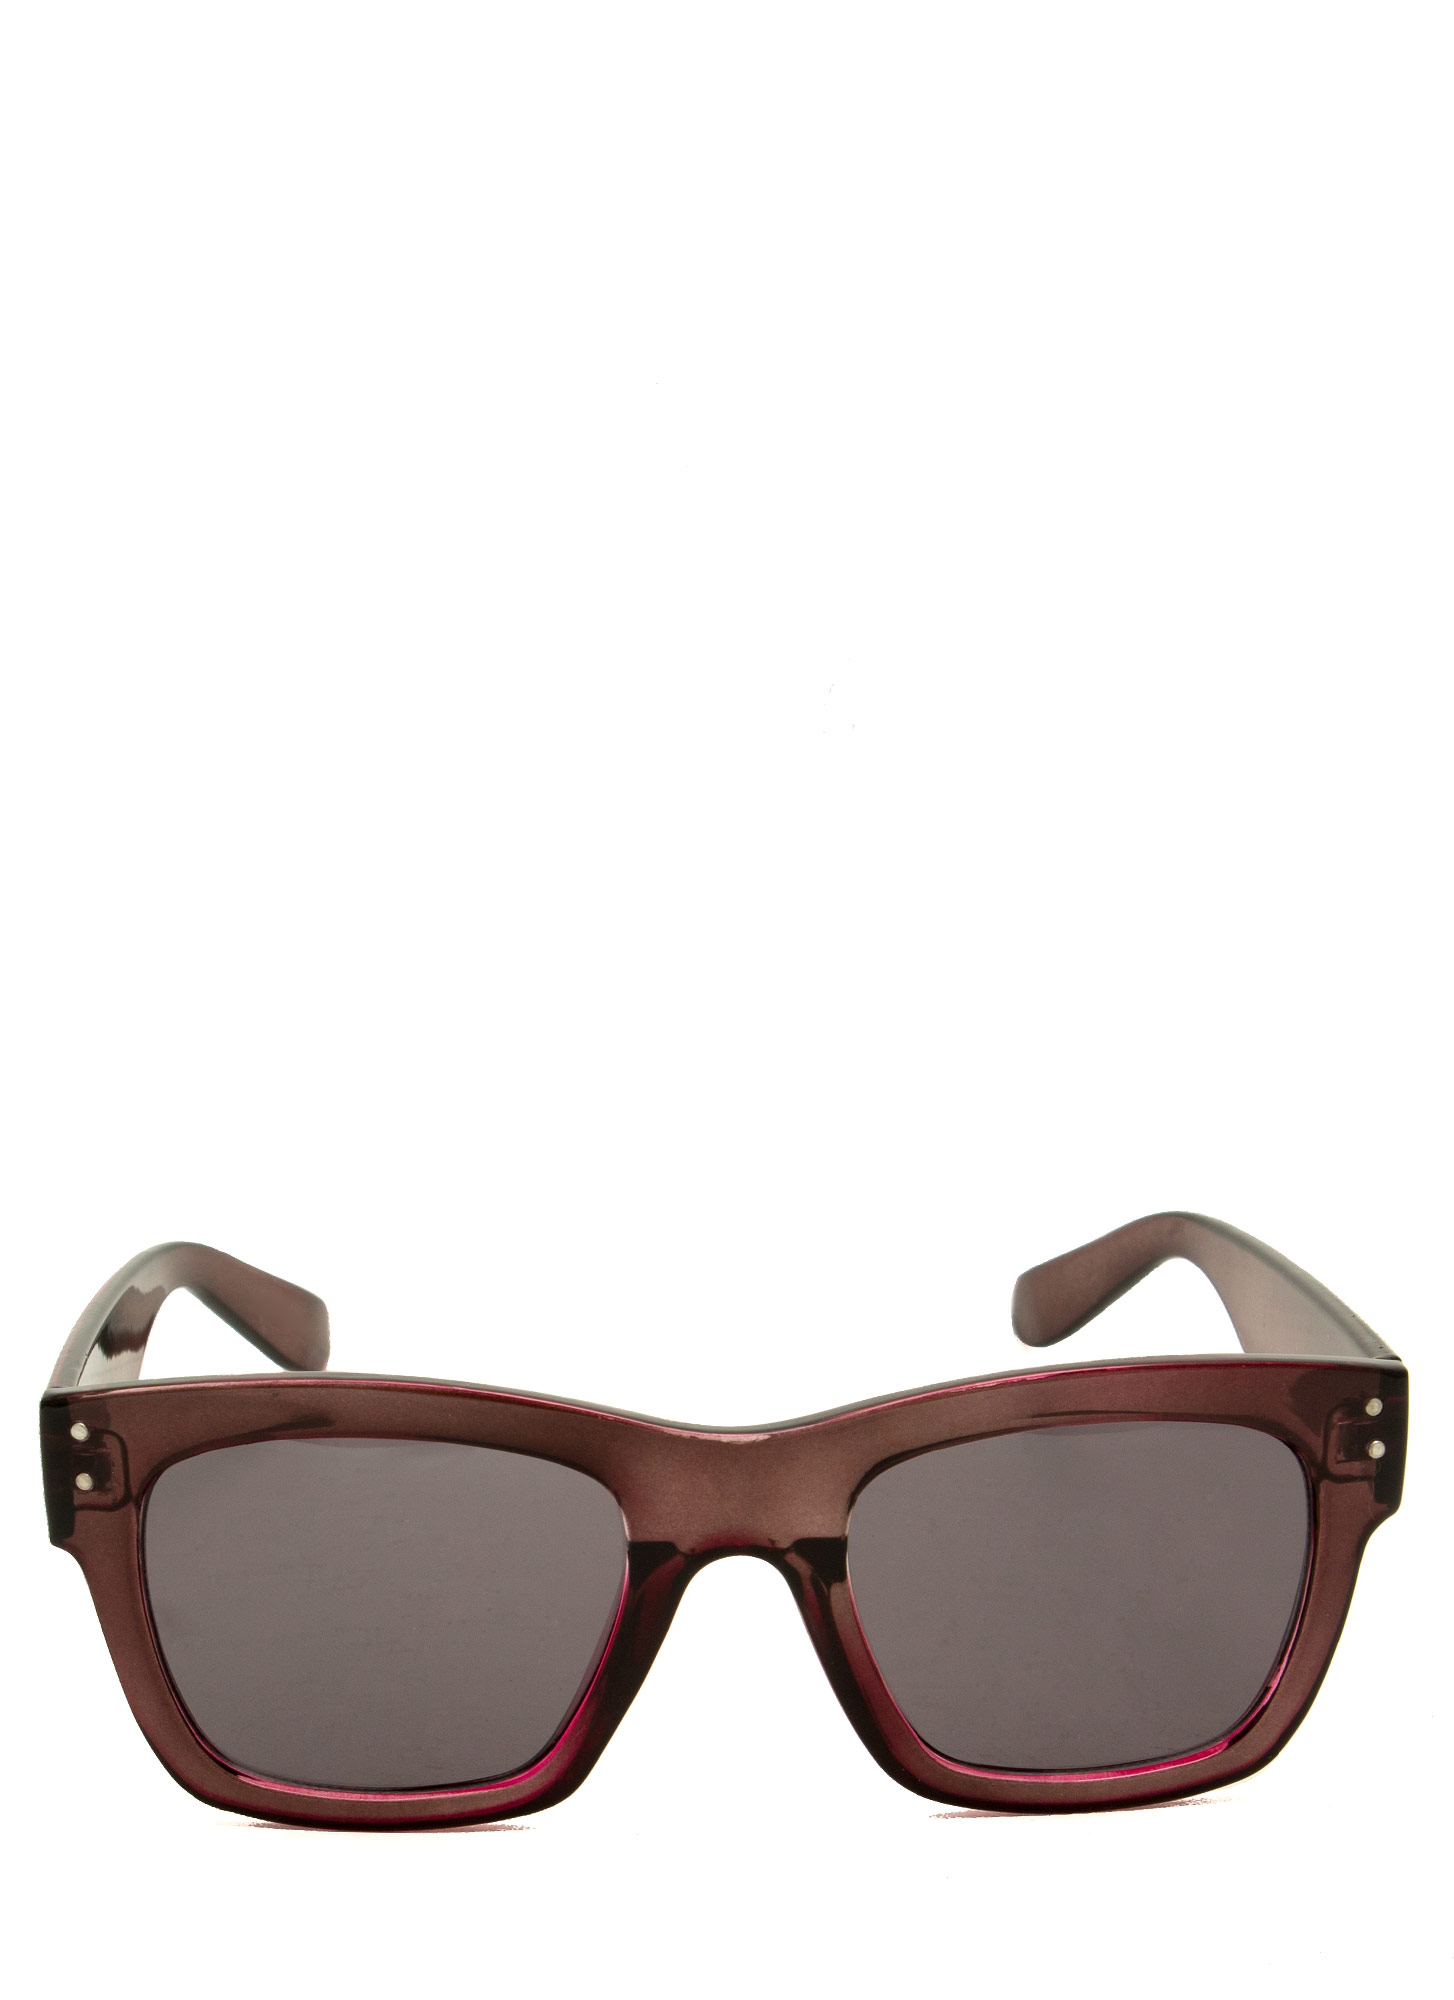 Retro Square Sunglasses PURPLE